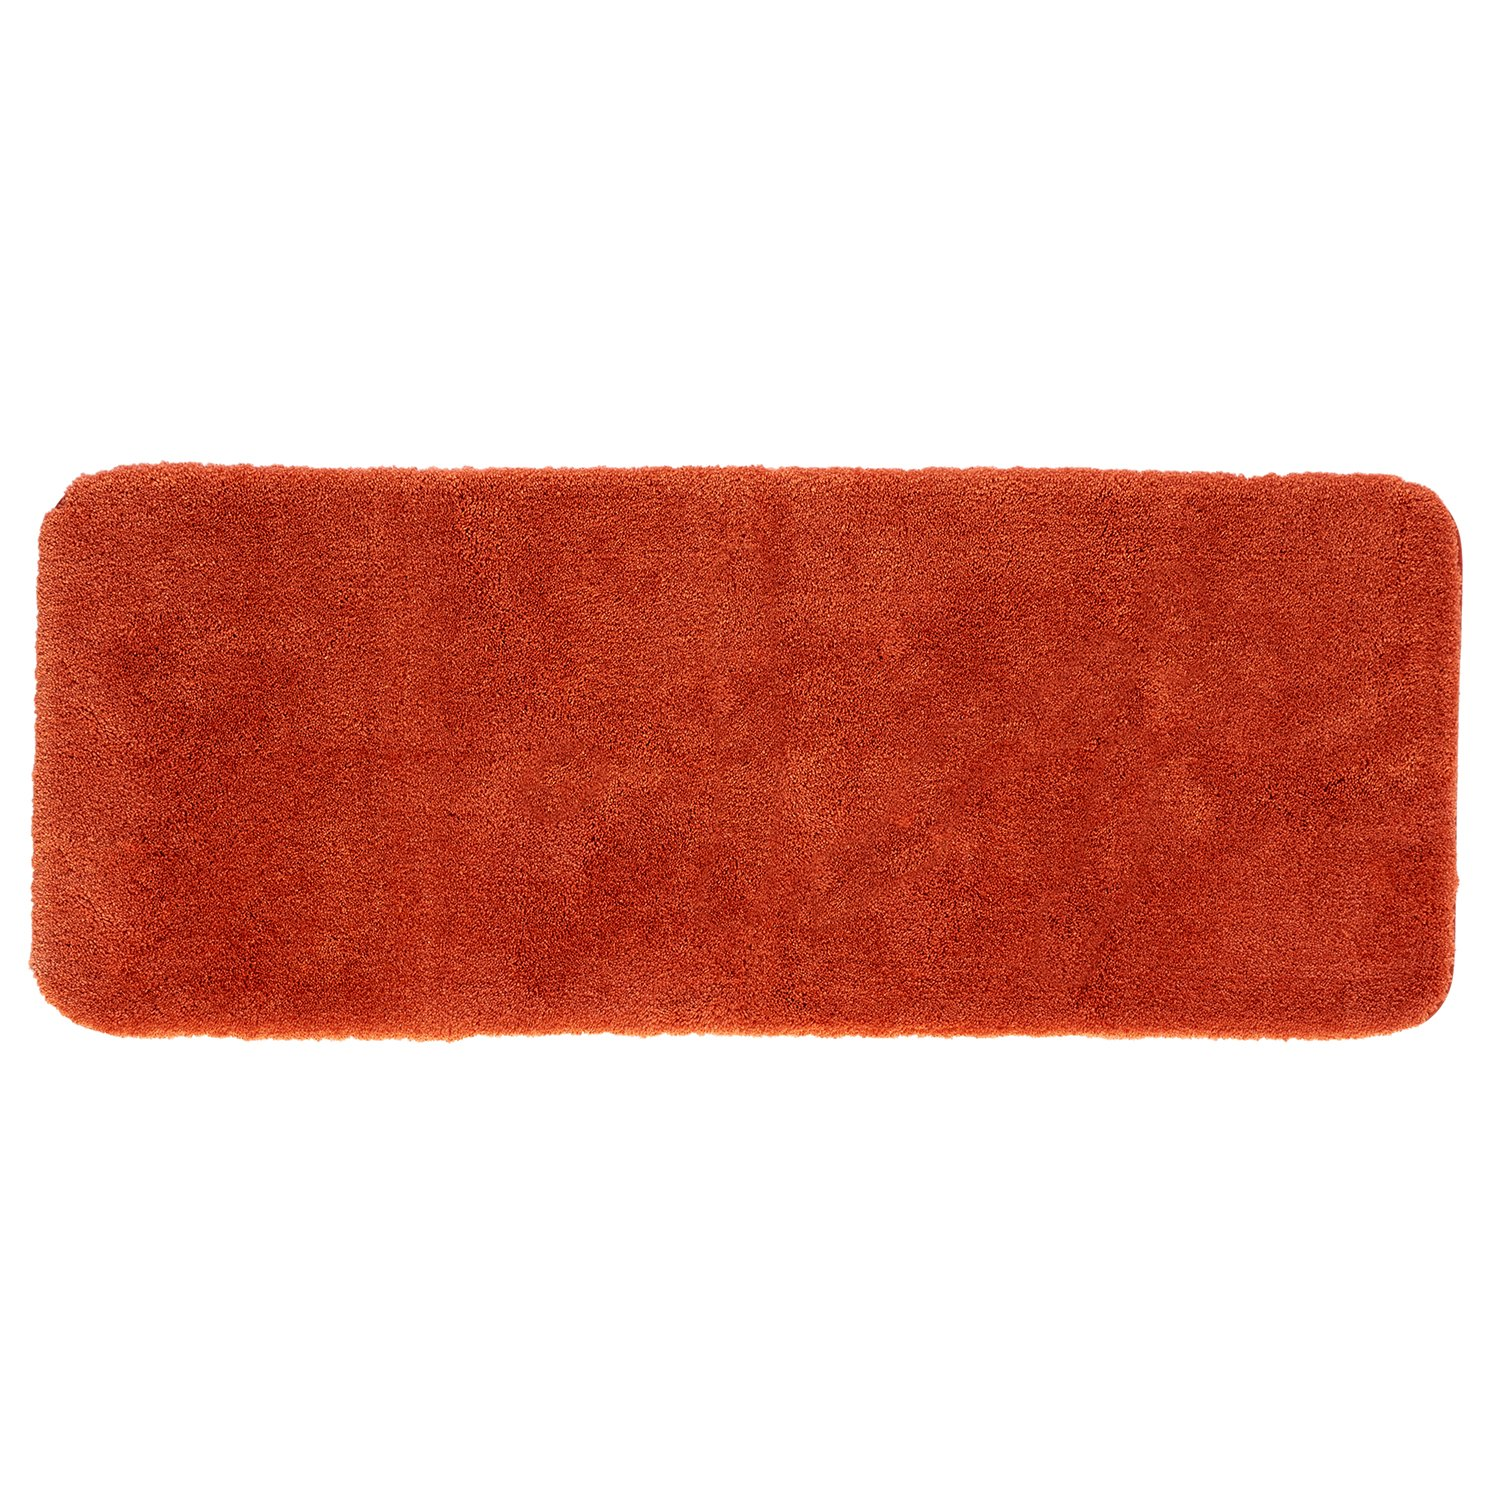 Mohawk Home Spa 2' x 5' Bath Rug in Paprika by Mohawk Home (Image #1)